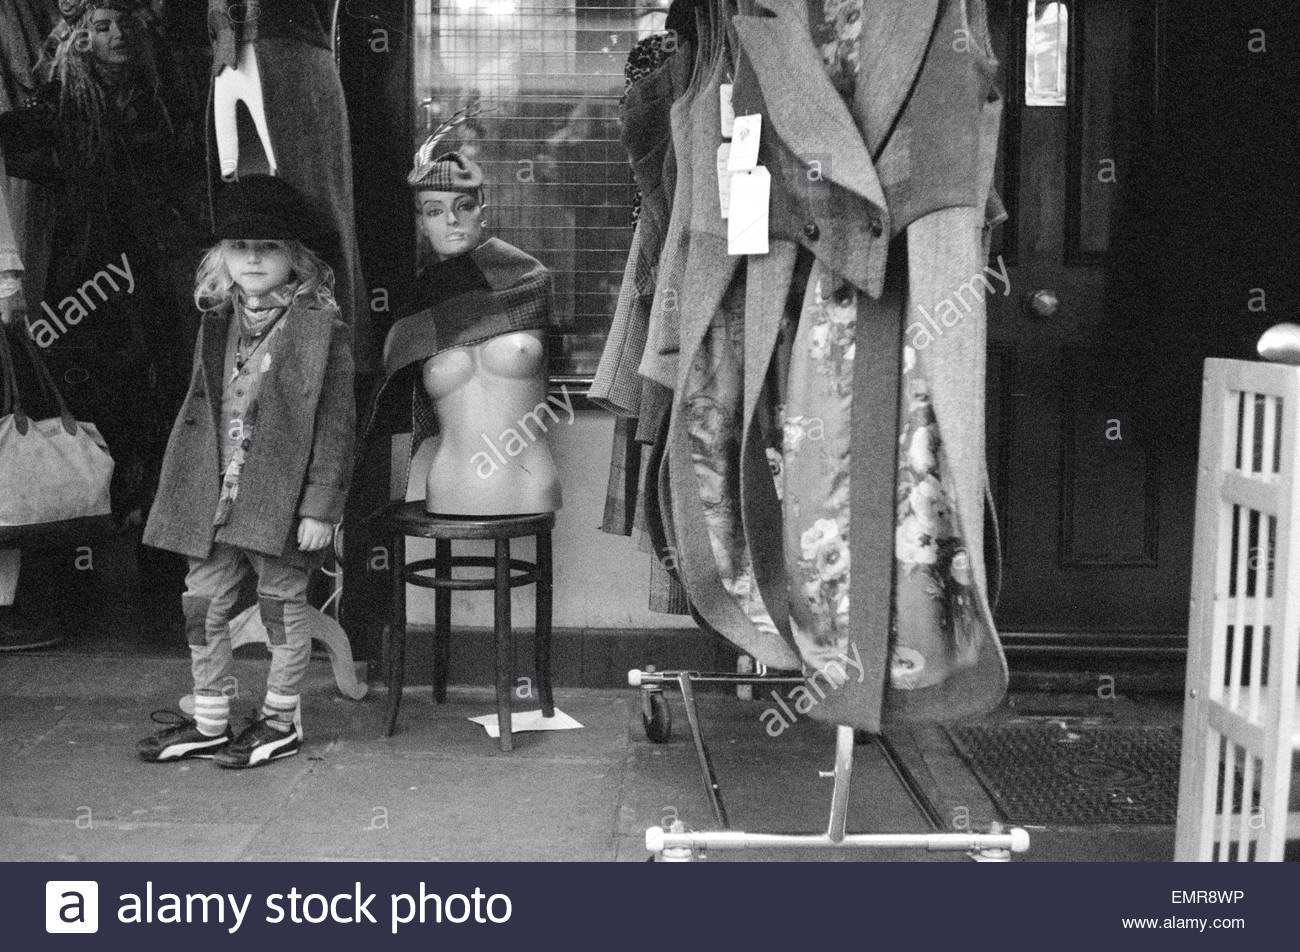 A young boy pose out side a vintage clothes store on Portobello Road, Notting Hill London Street Style Fashion. - Stock Image